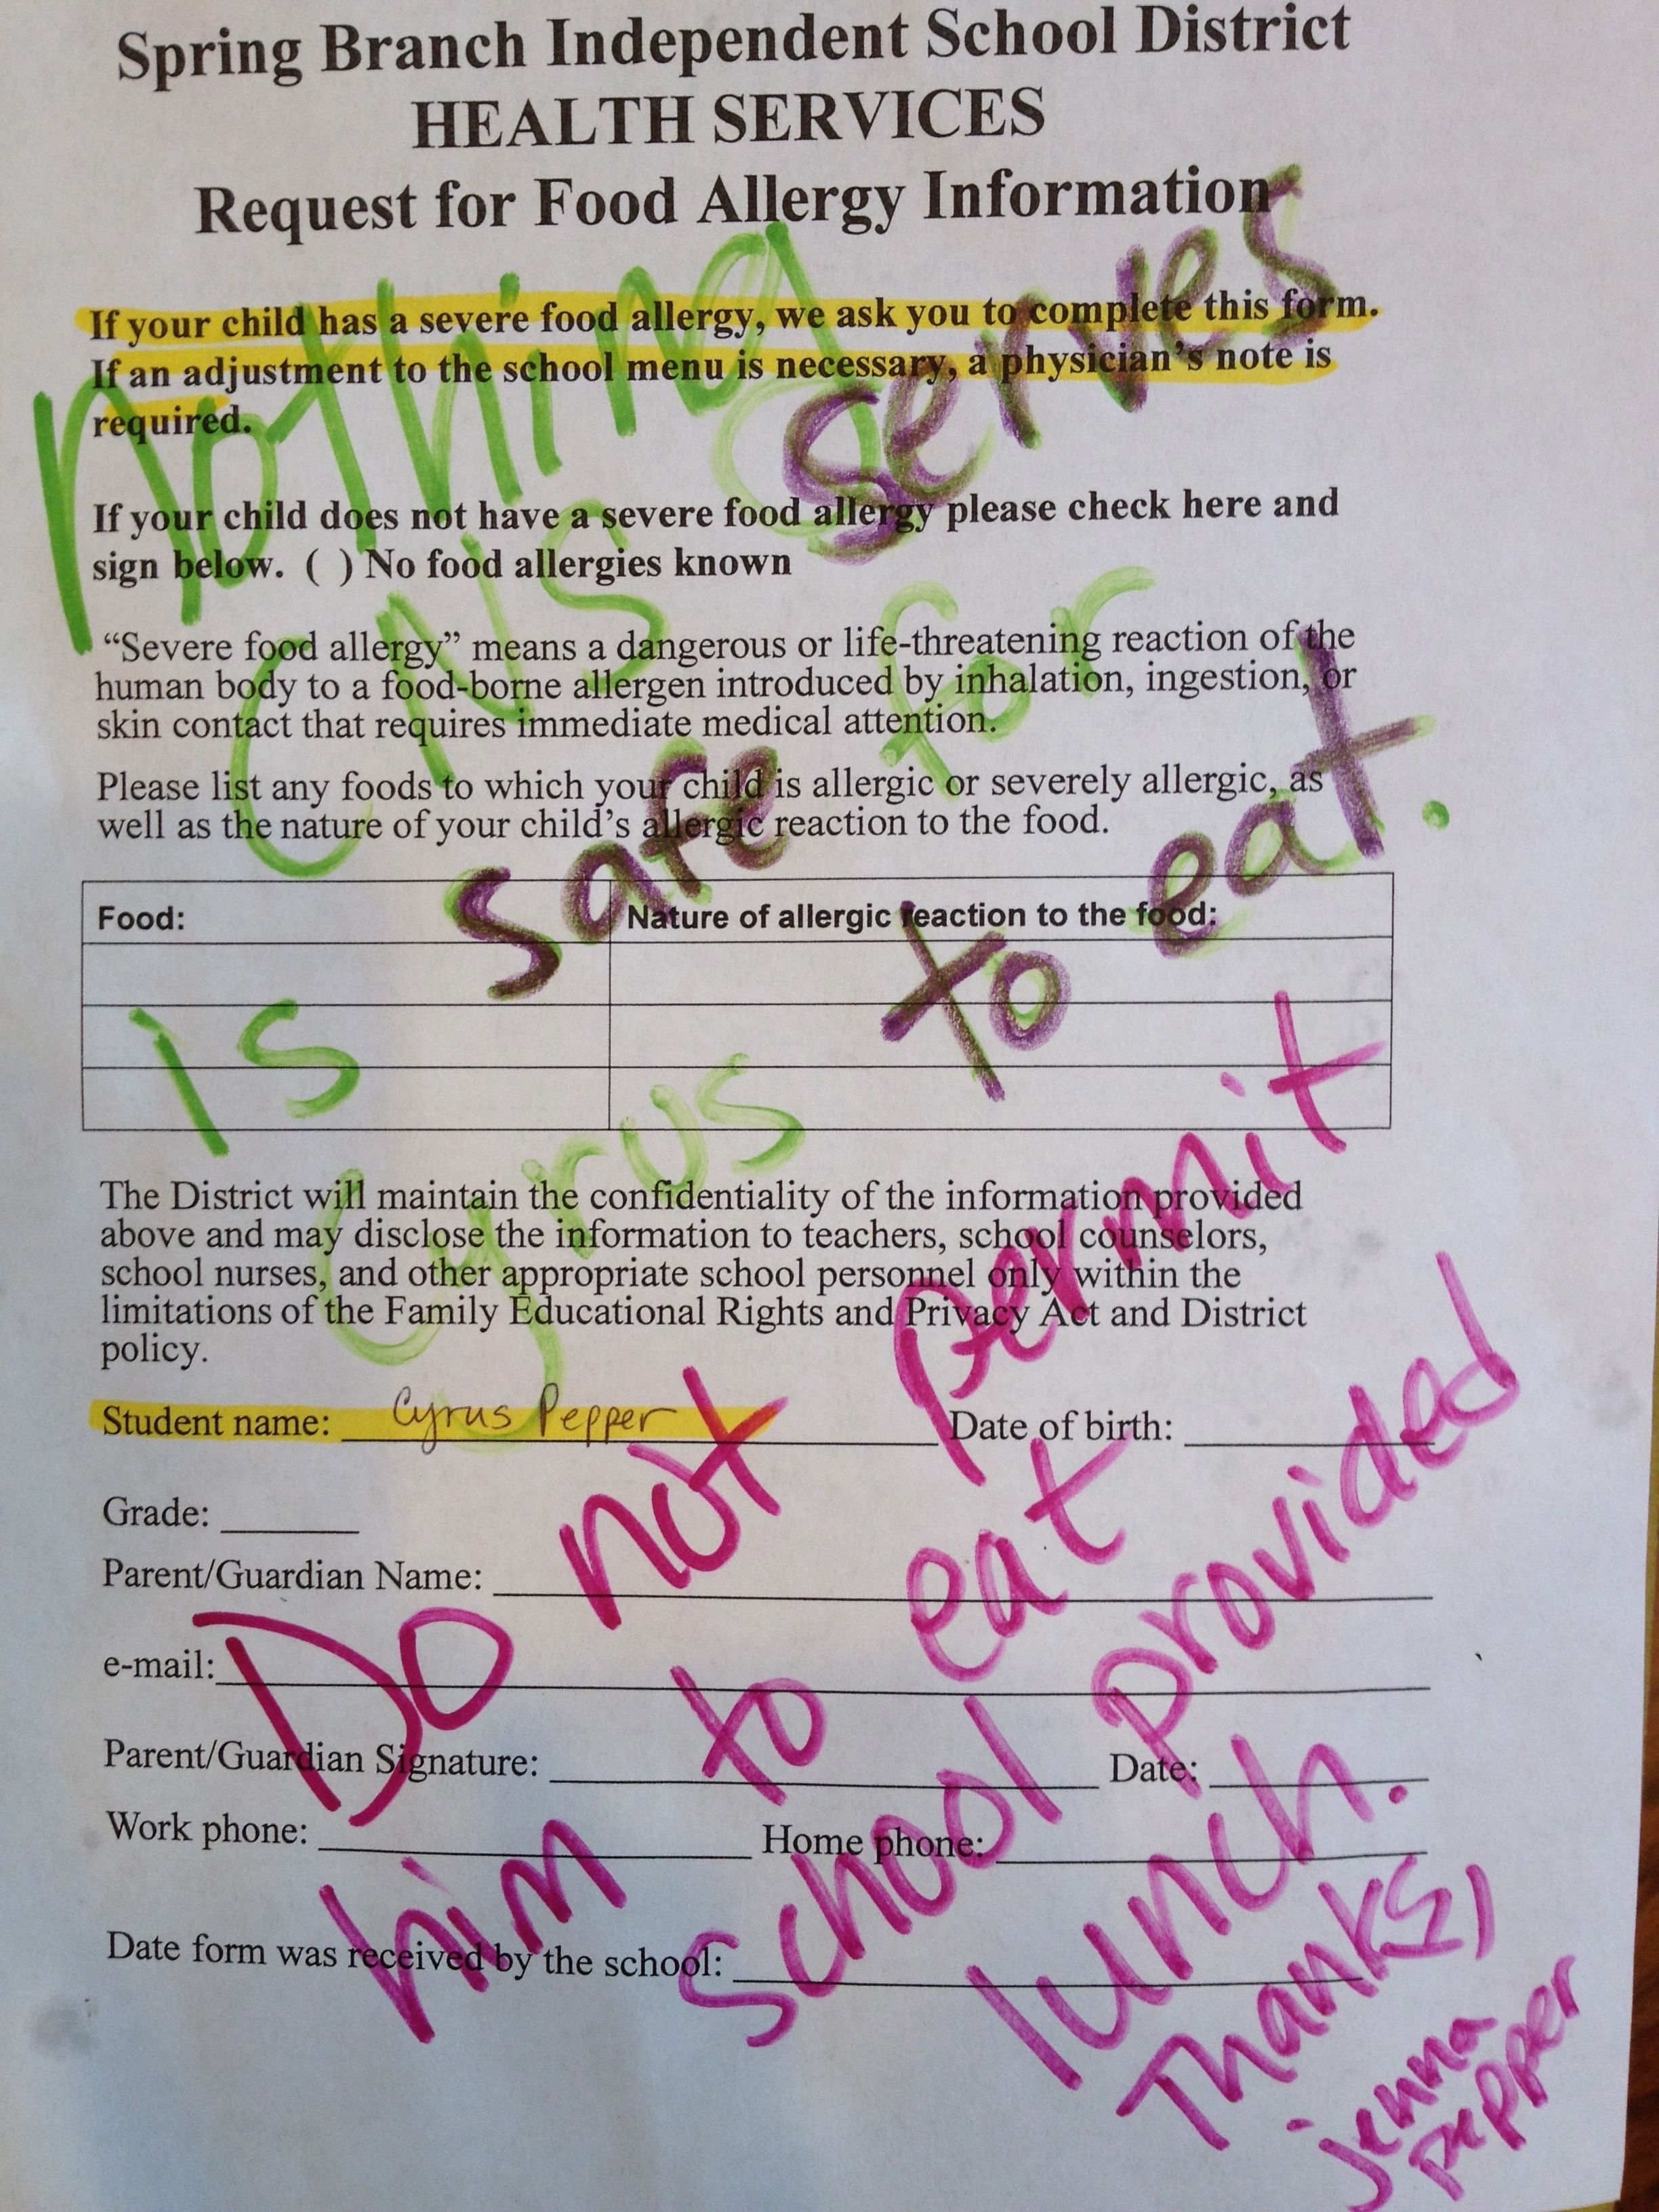 Food Allergy Form Response school lunch isn't safe to eat